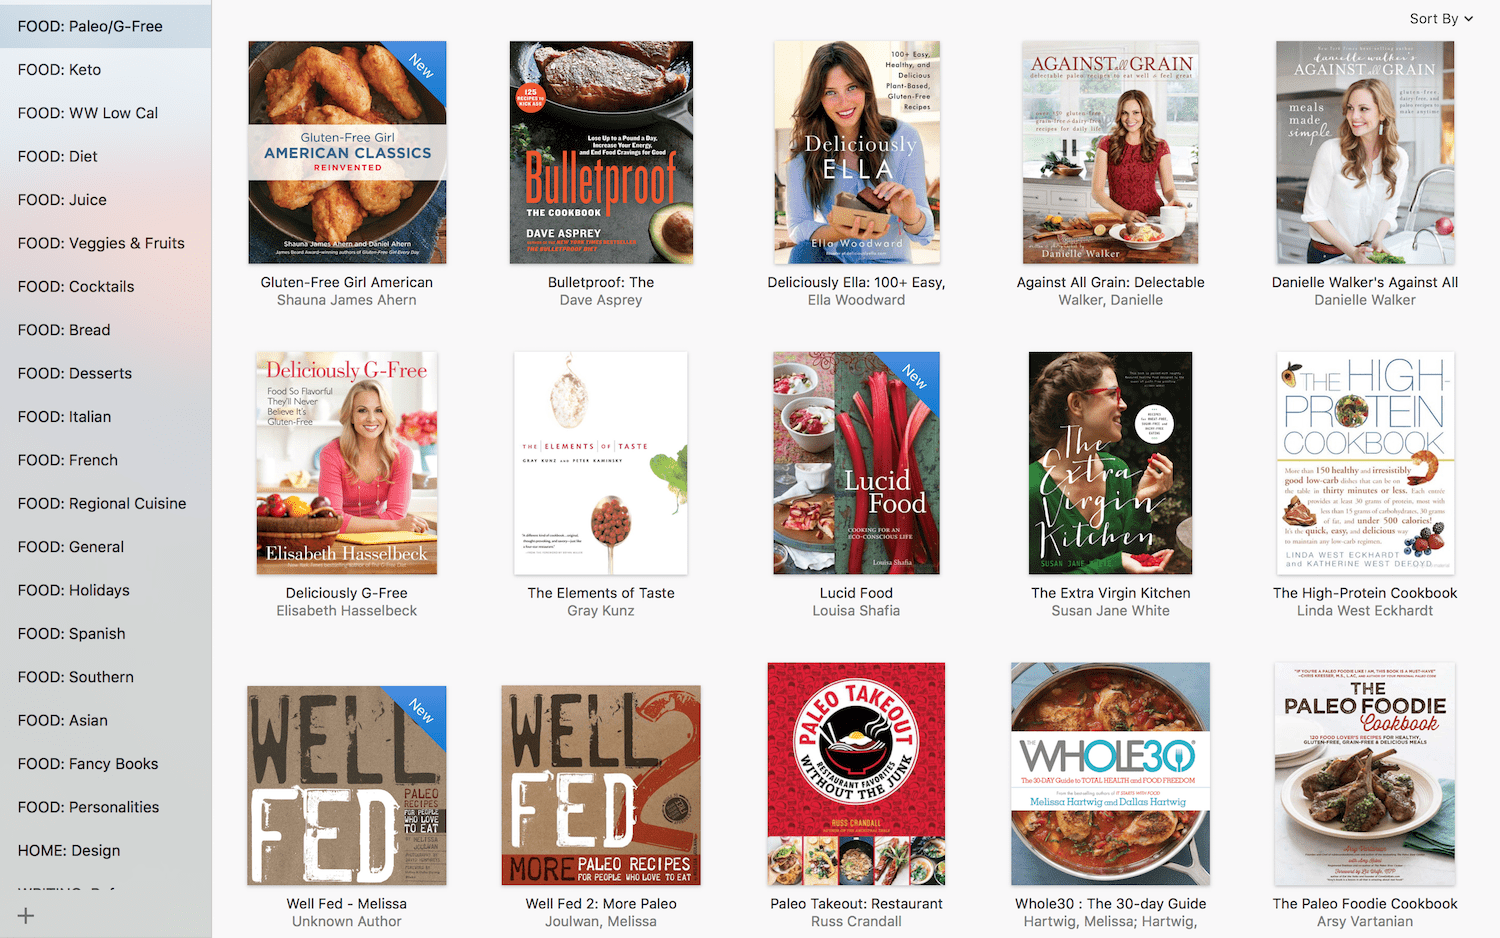 gluten-free and paleo cookbooks